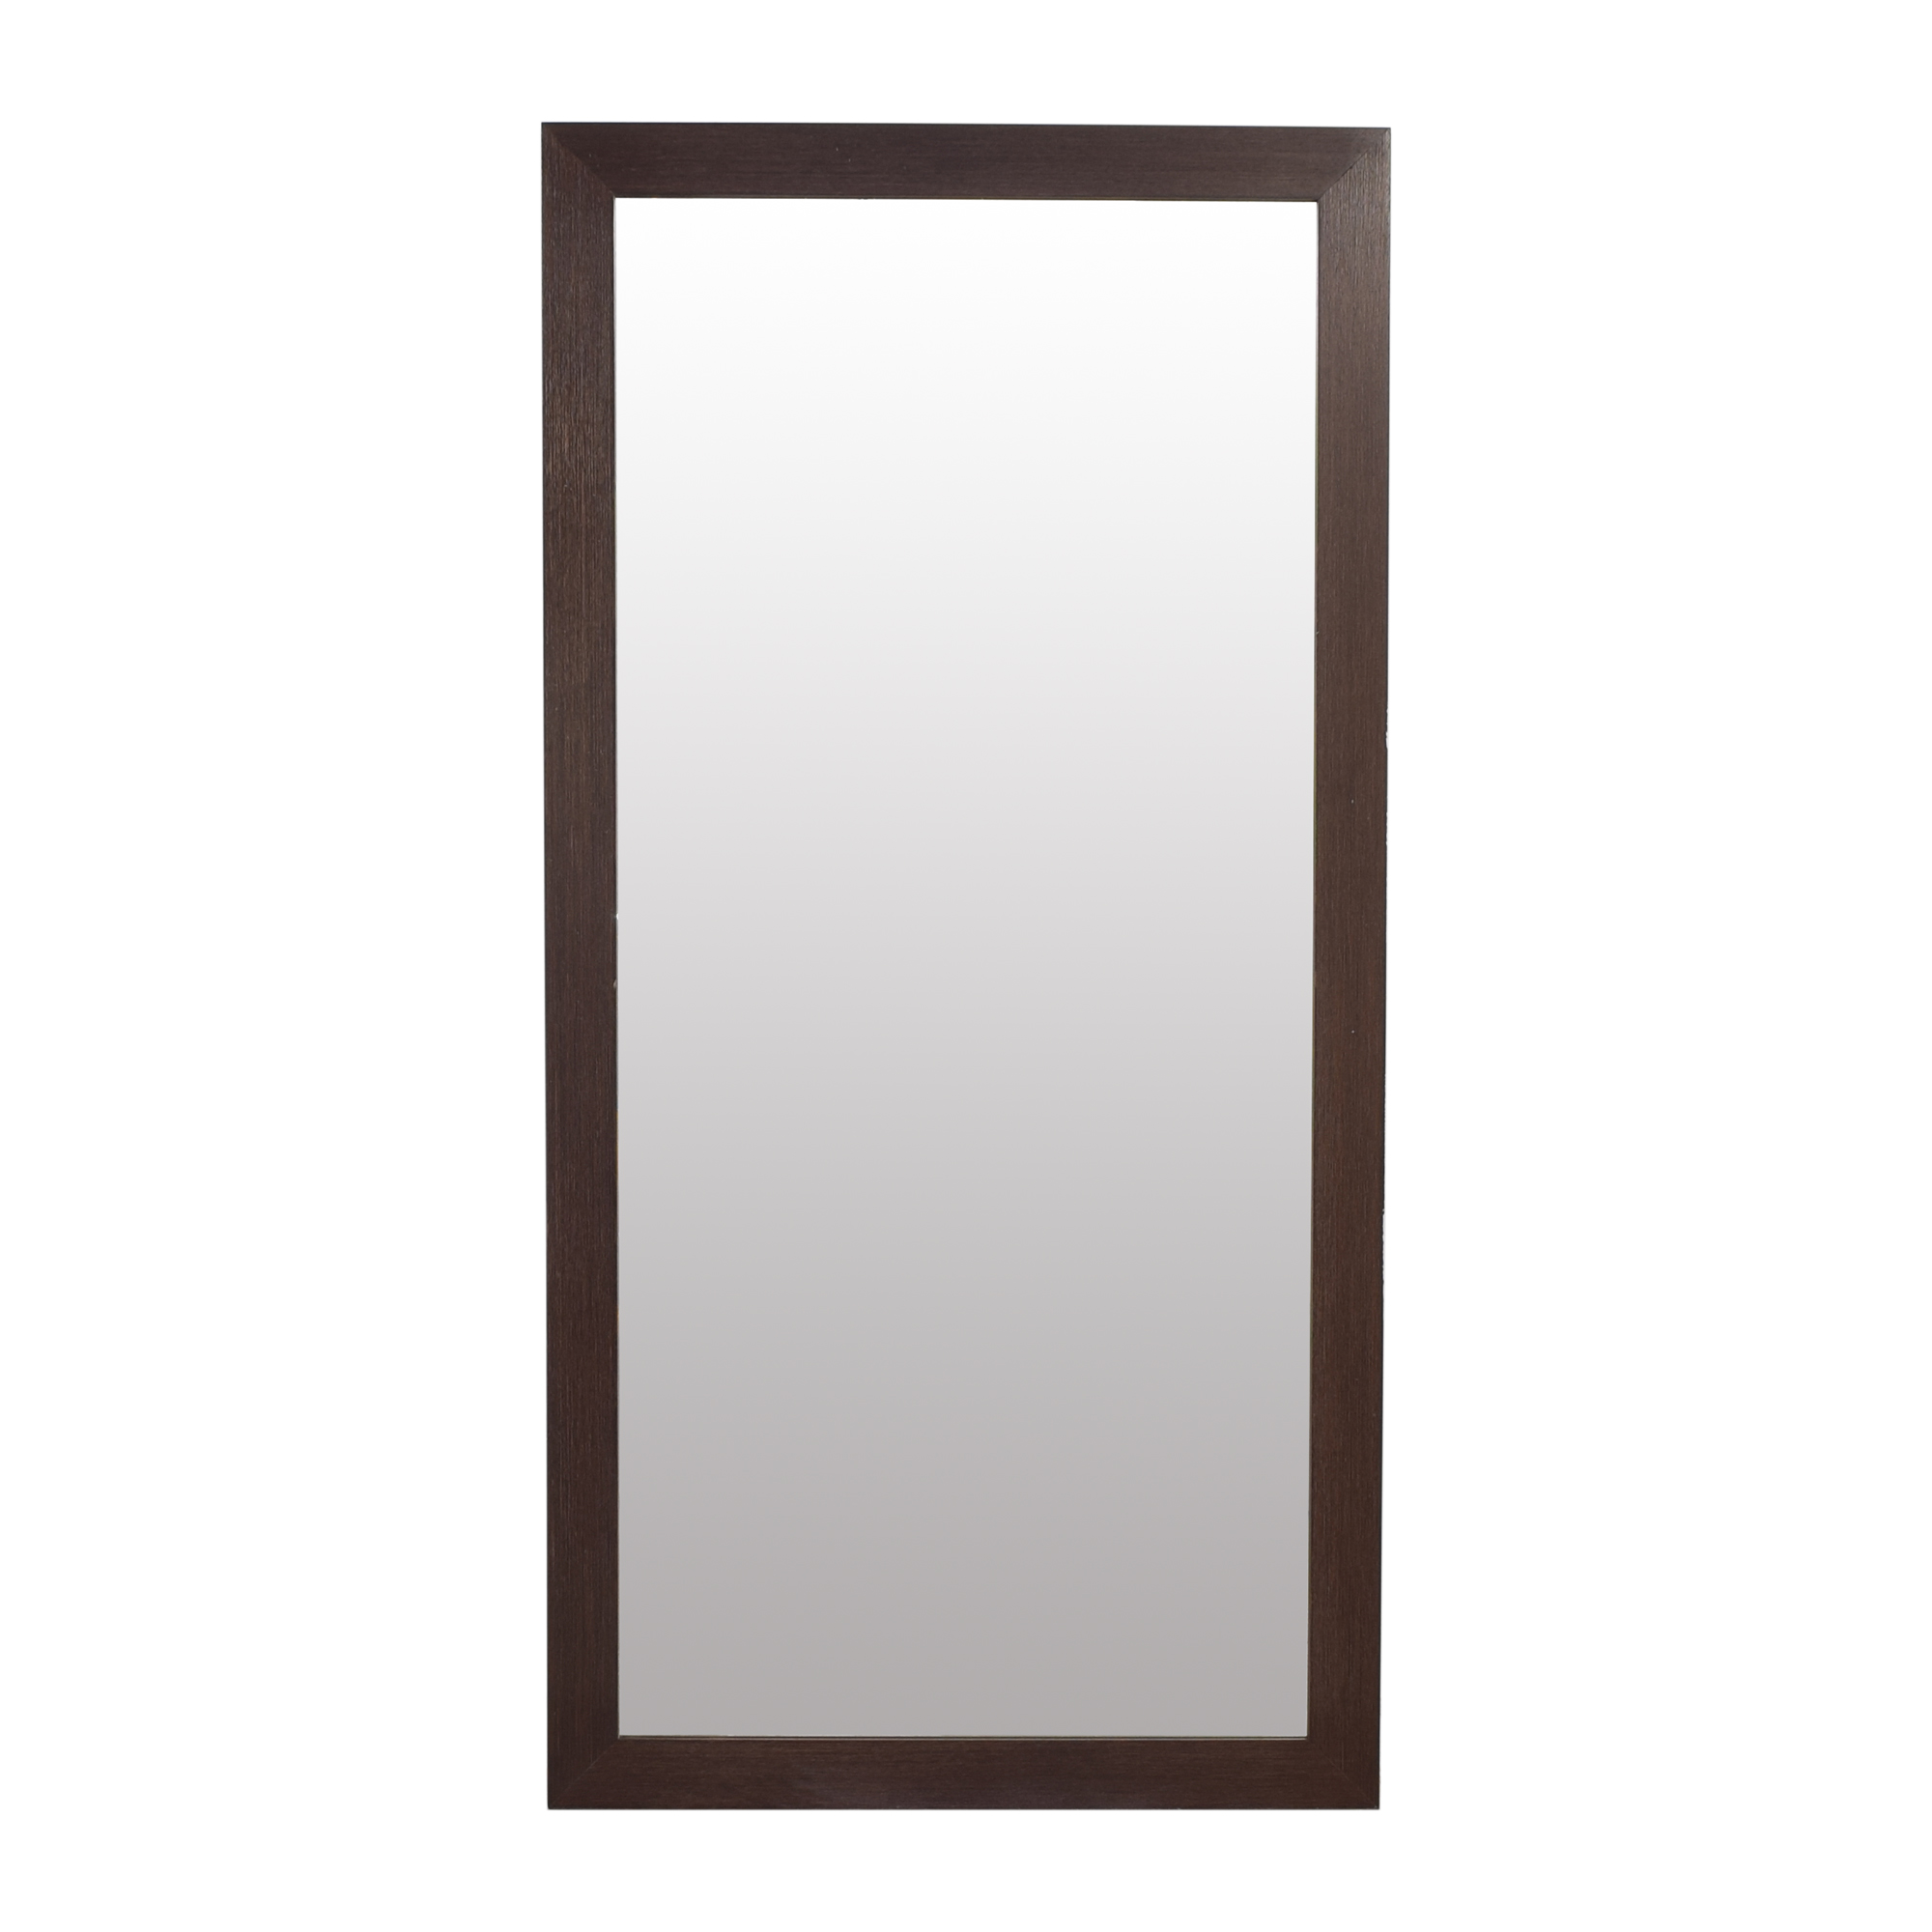 Tall Framed Mirror discount